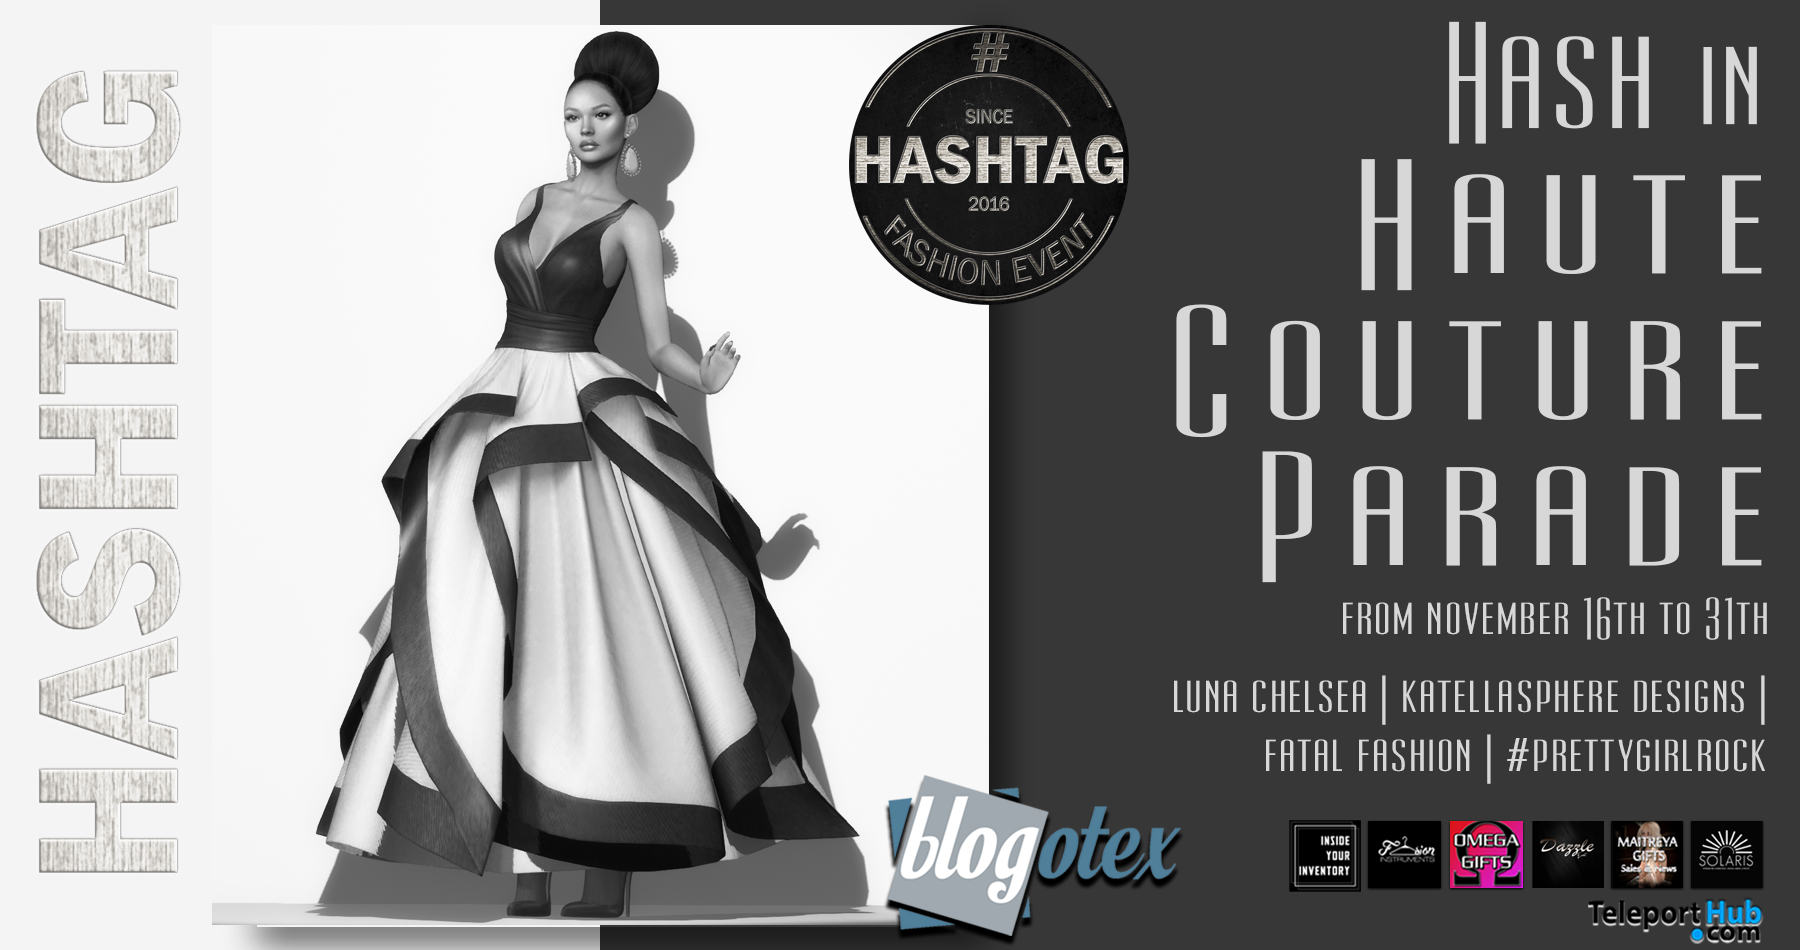 GALLERY HASH IN HAUTE COUTURE PARADE